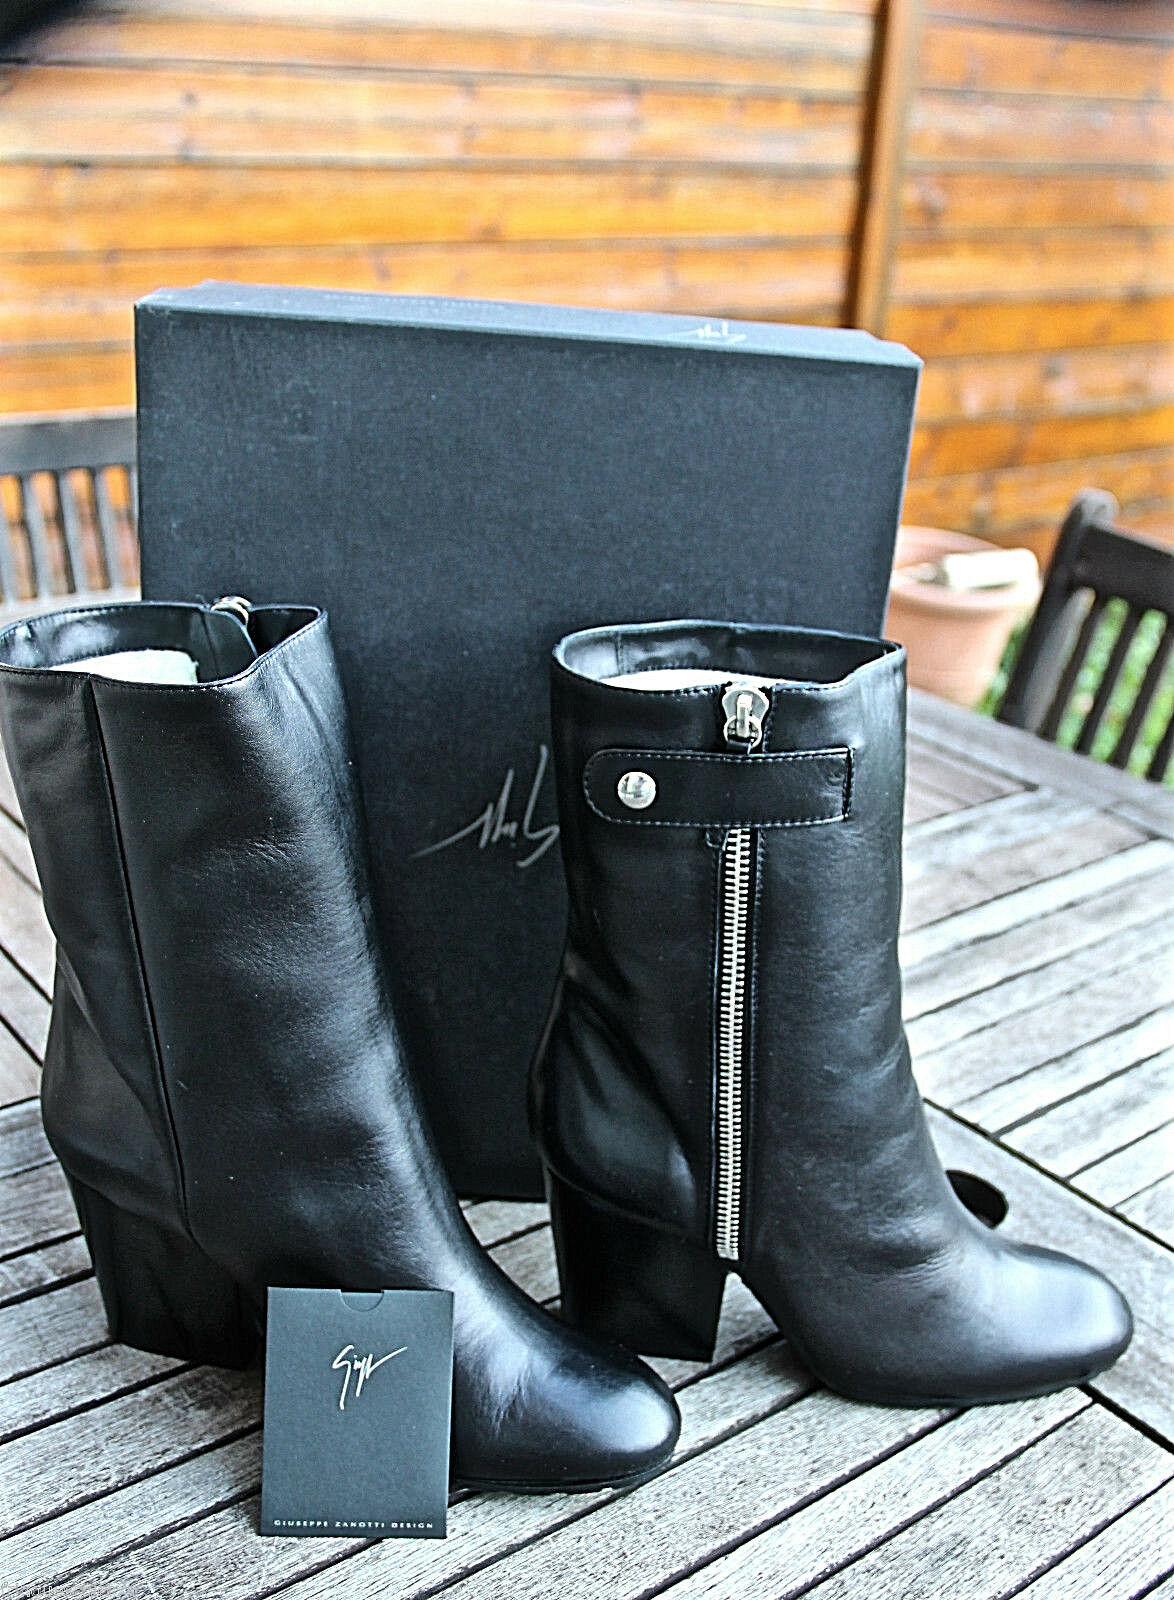 Bottines fourrées GIUSEPPE ZANOTTI baby calf size 40,5 eu 9,5 us 7 uk VAL